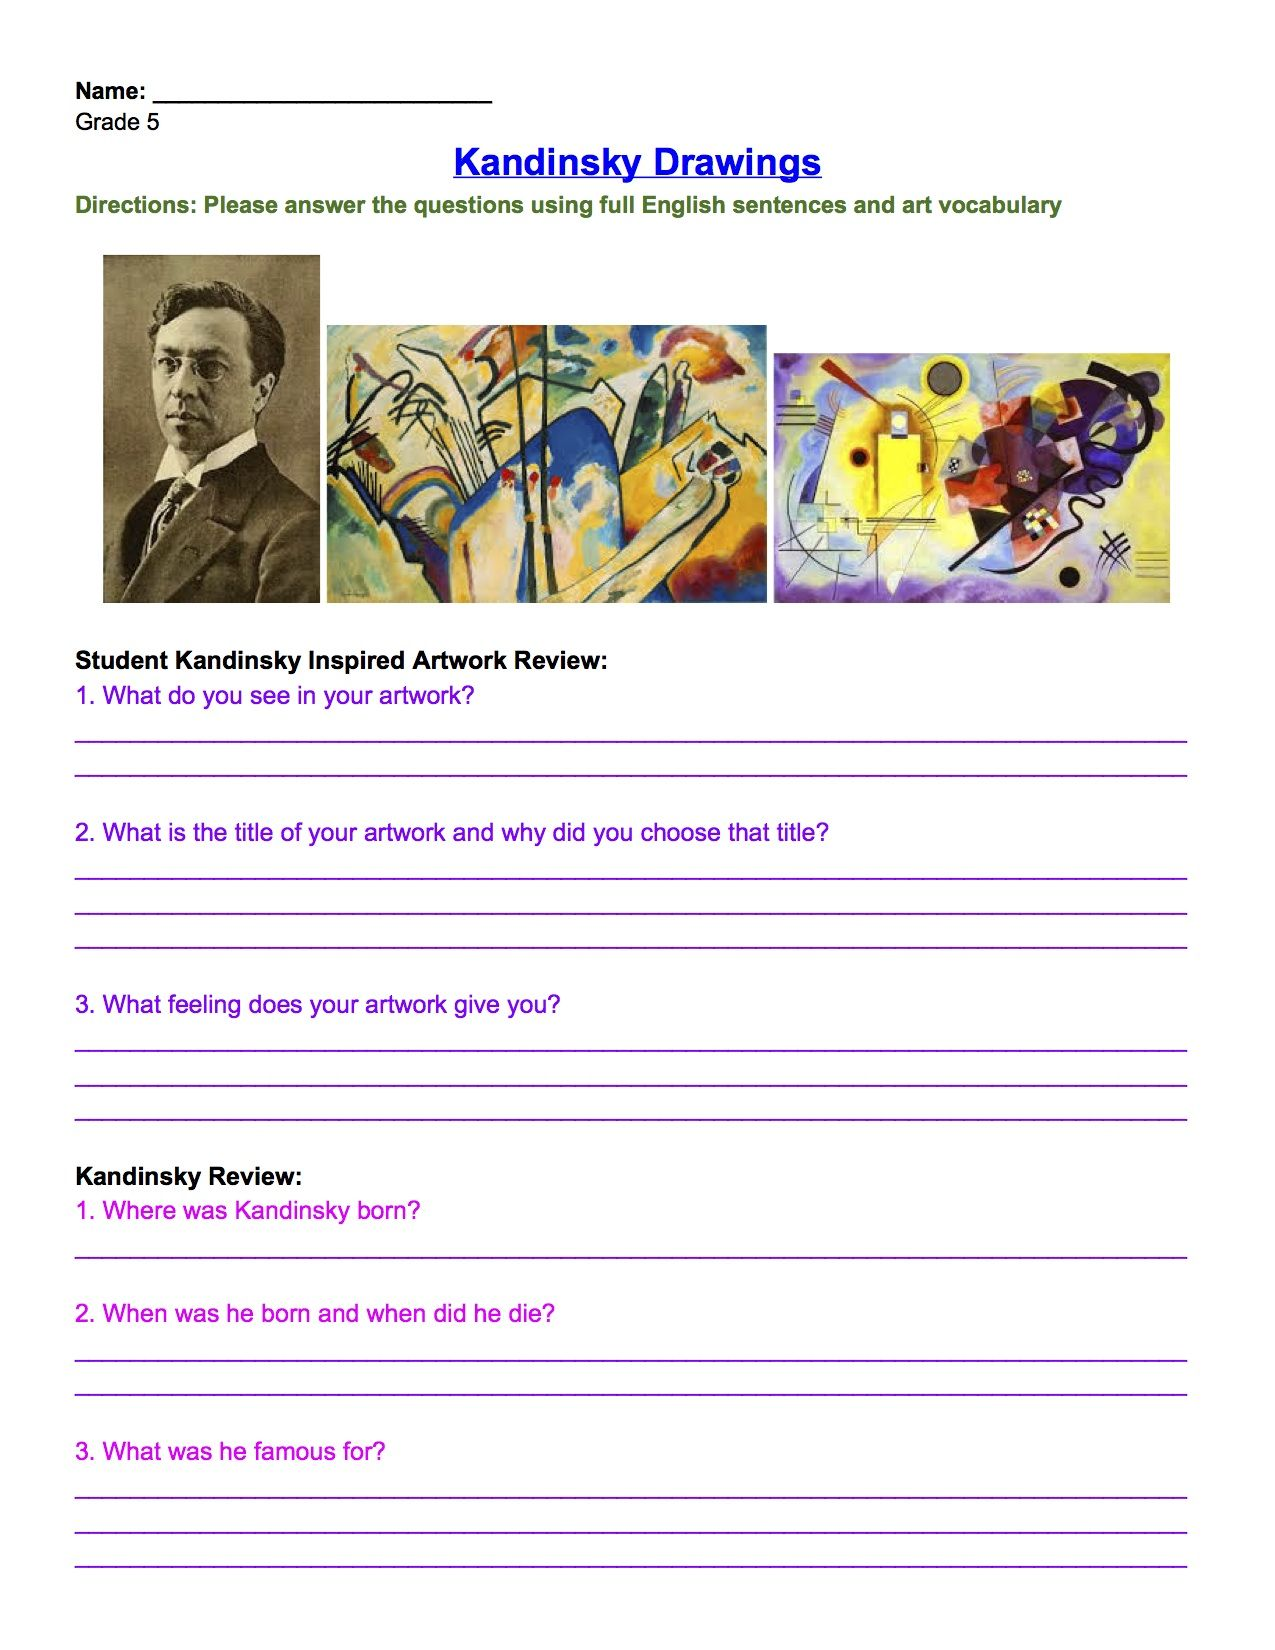 Kandinsky Drawing Review Worksheet Grade 5